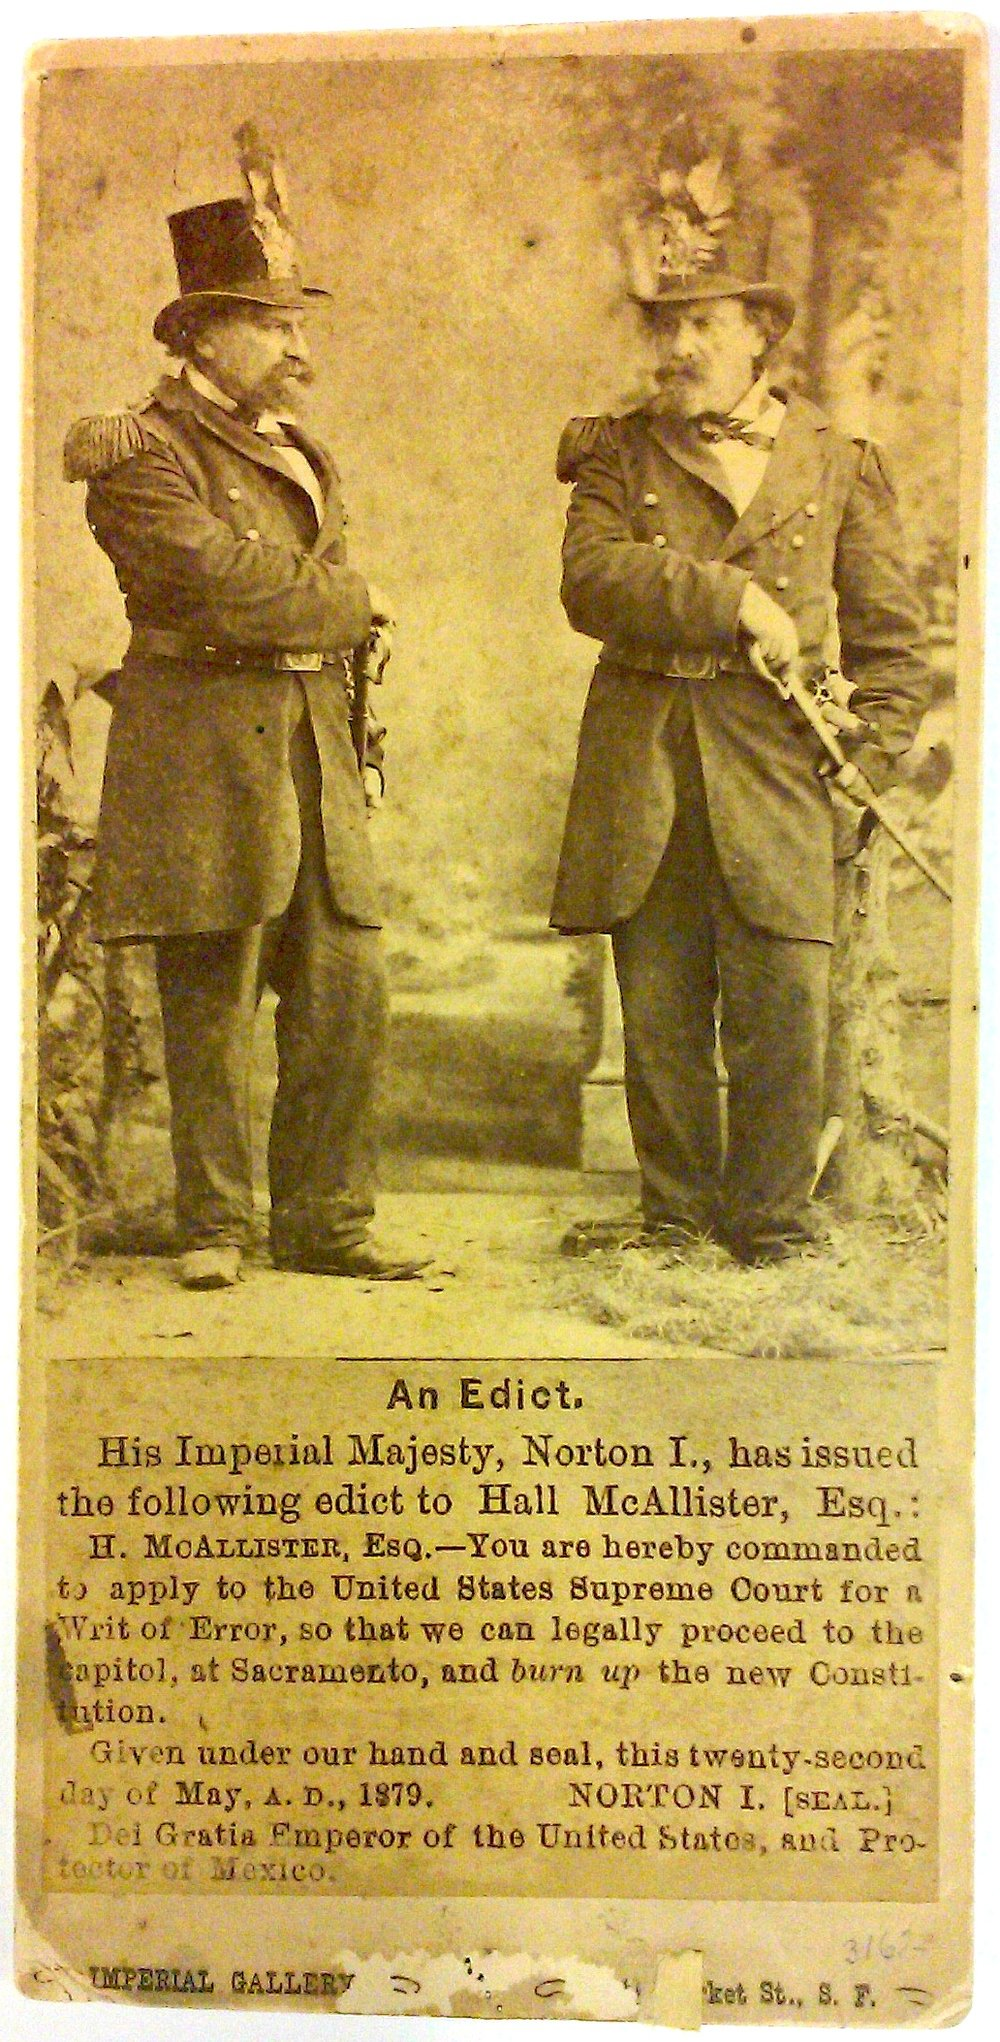 Emperor_Norton_cabinet_card_Imperial_Gallery_SF_Jun_1879_CHS_front.jpg